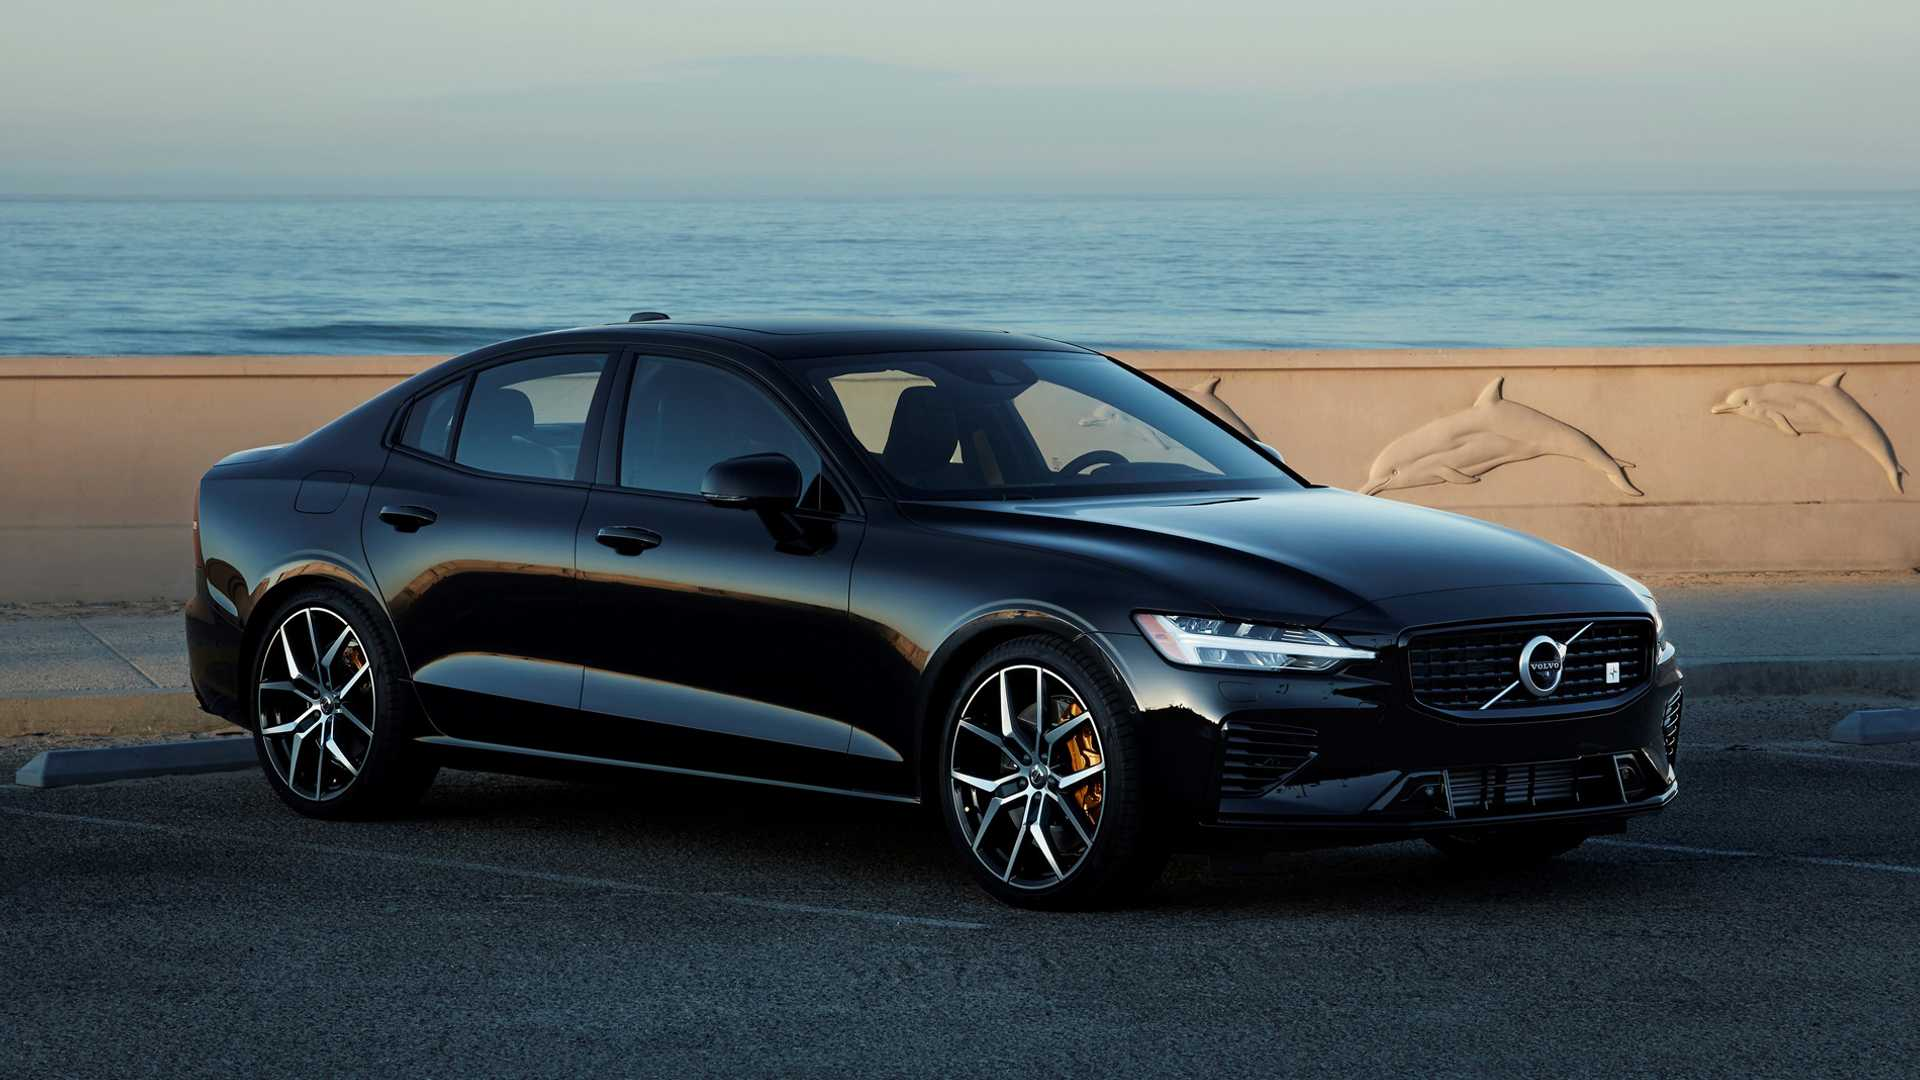 Volvo's new Polestar-engineered models are on sale now